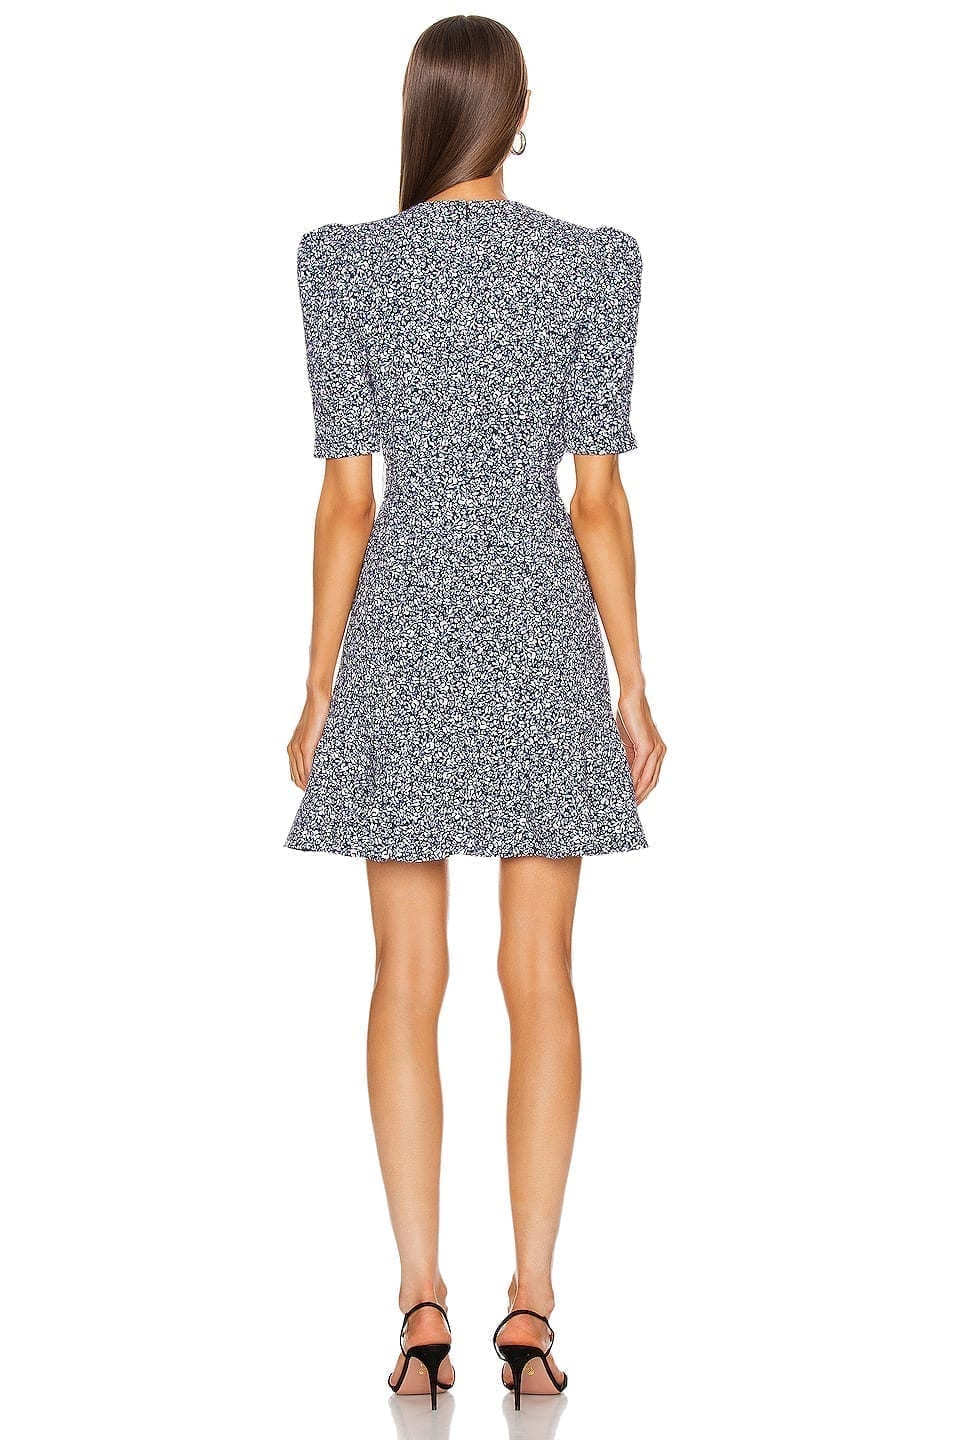 JONATHAN SIMKHAI Evelyn Floral Dress